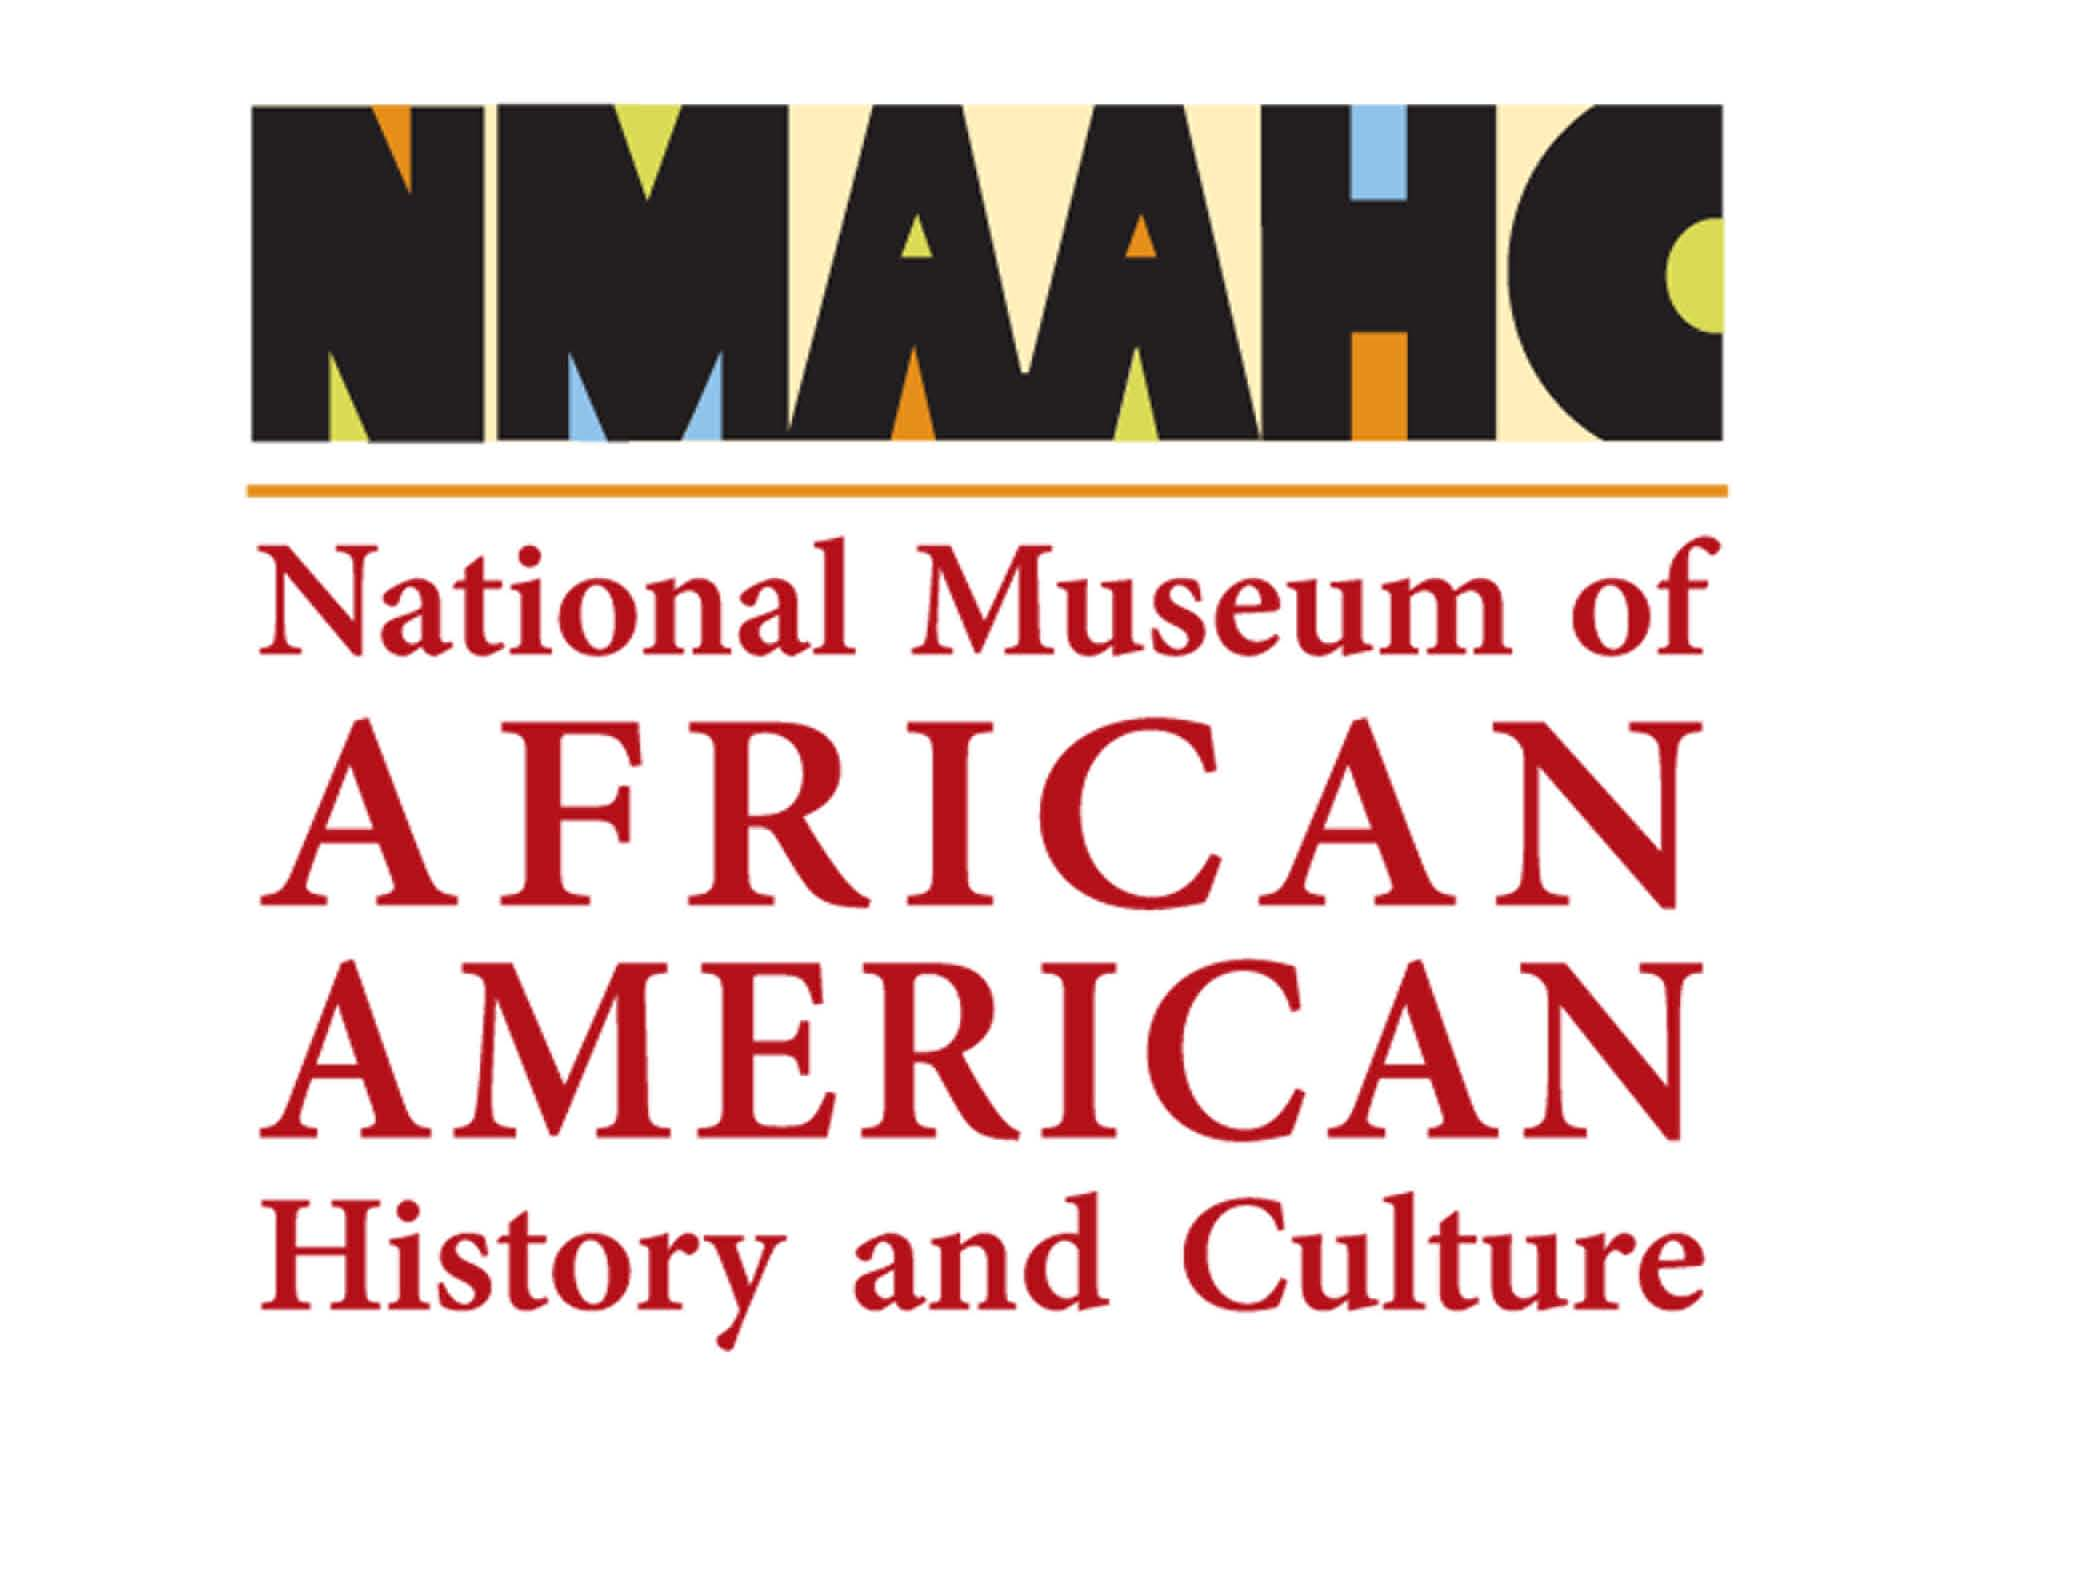 nmaahc-national museum of african american history and culture